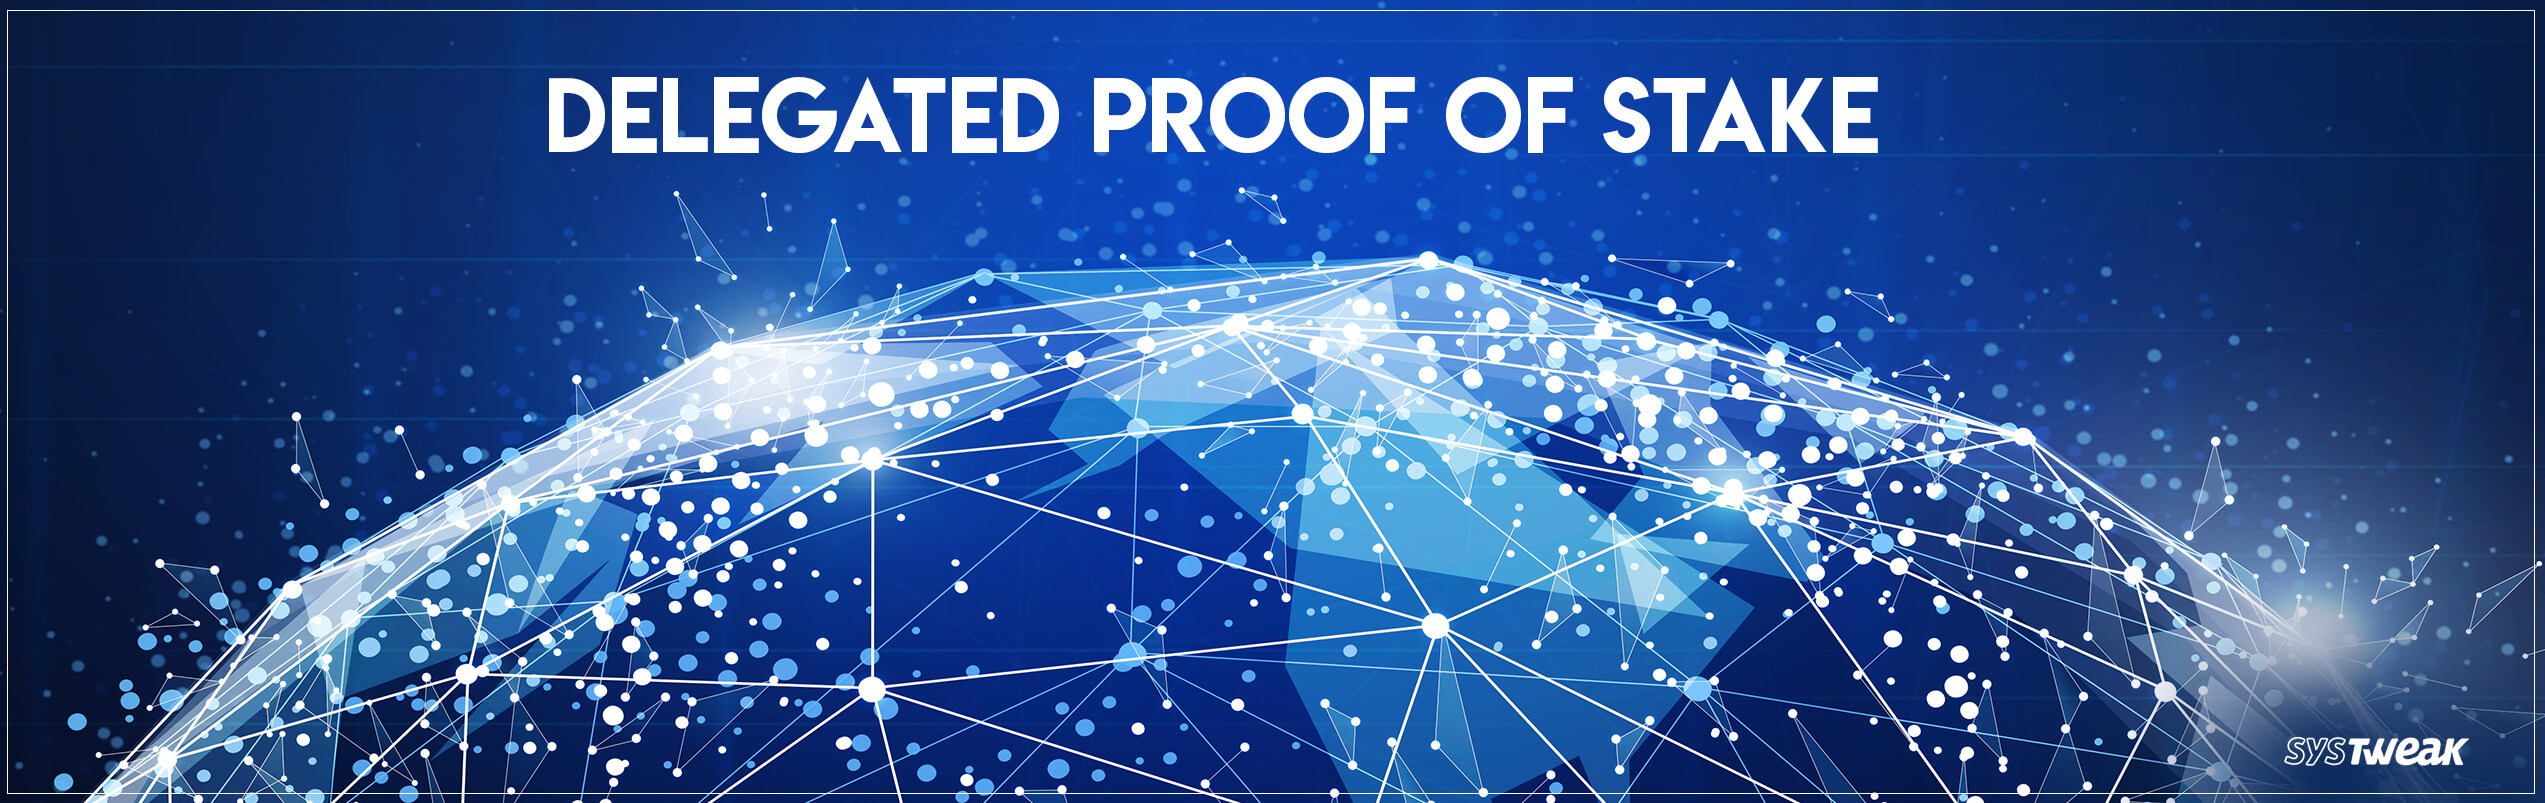 What Is Delegated Proof Of Stake?